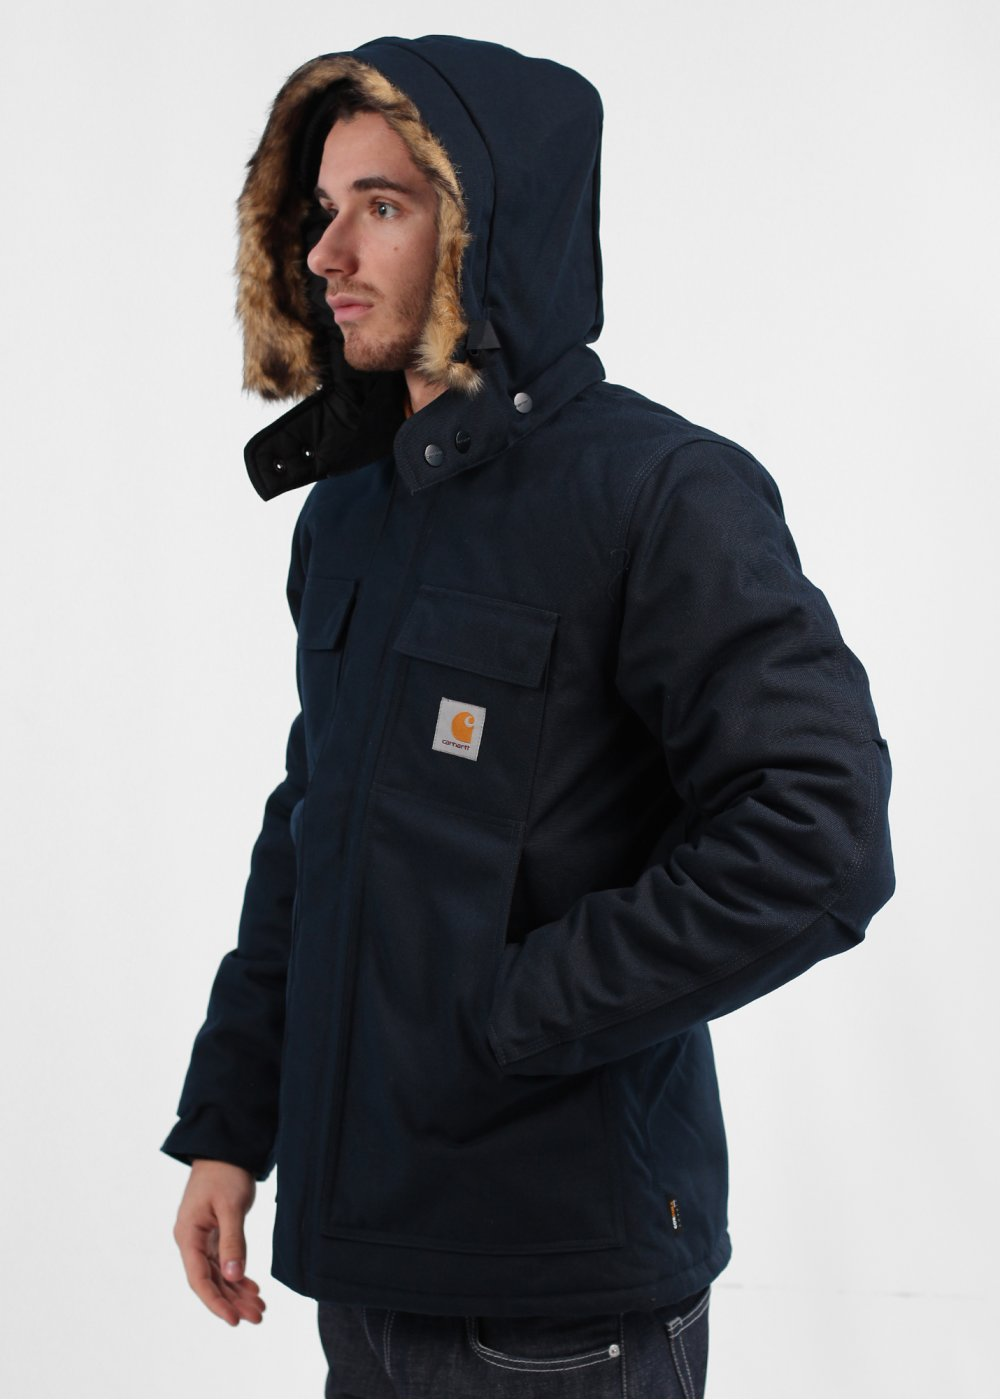 You searched for: navy blue parka! Etsy is the home to thousands of handmade, vintage, and one-of-a-kind products and gifts related to your search. No matter what you're looking for or where you are in the world, our global marketplace of sellers can help you find unique and affordable options. Let's get started!